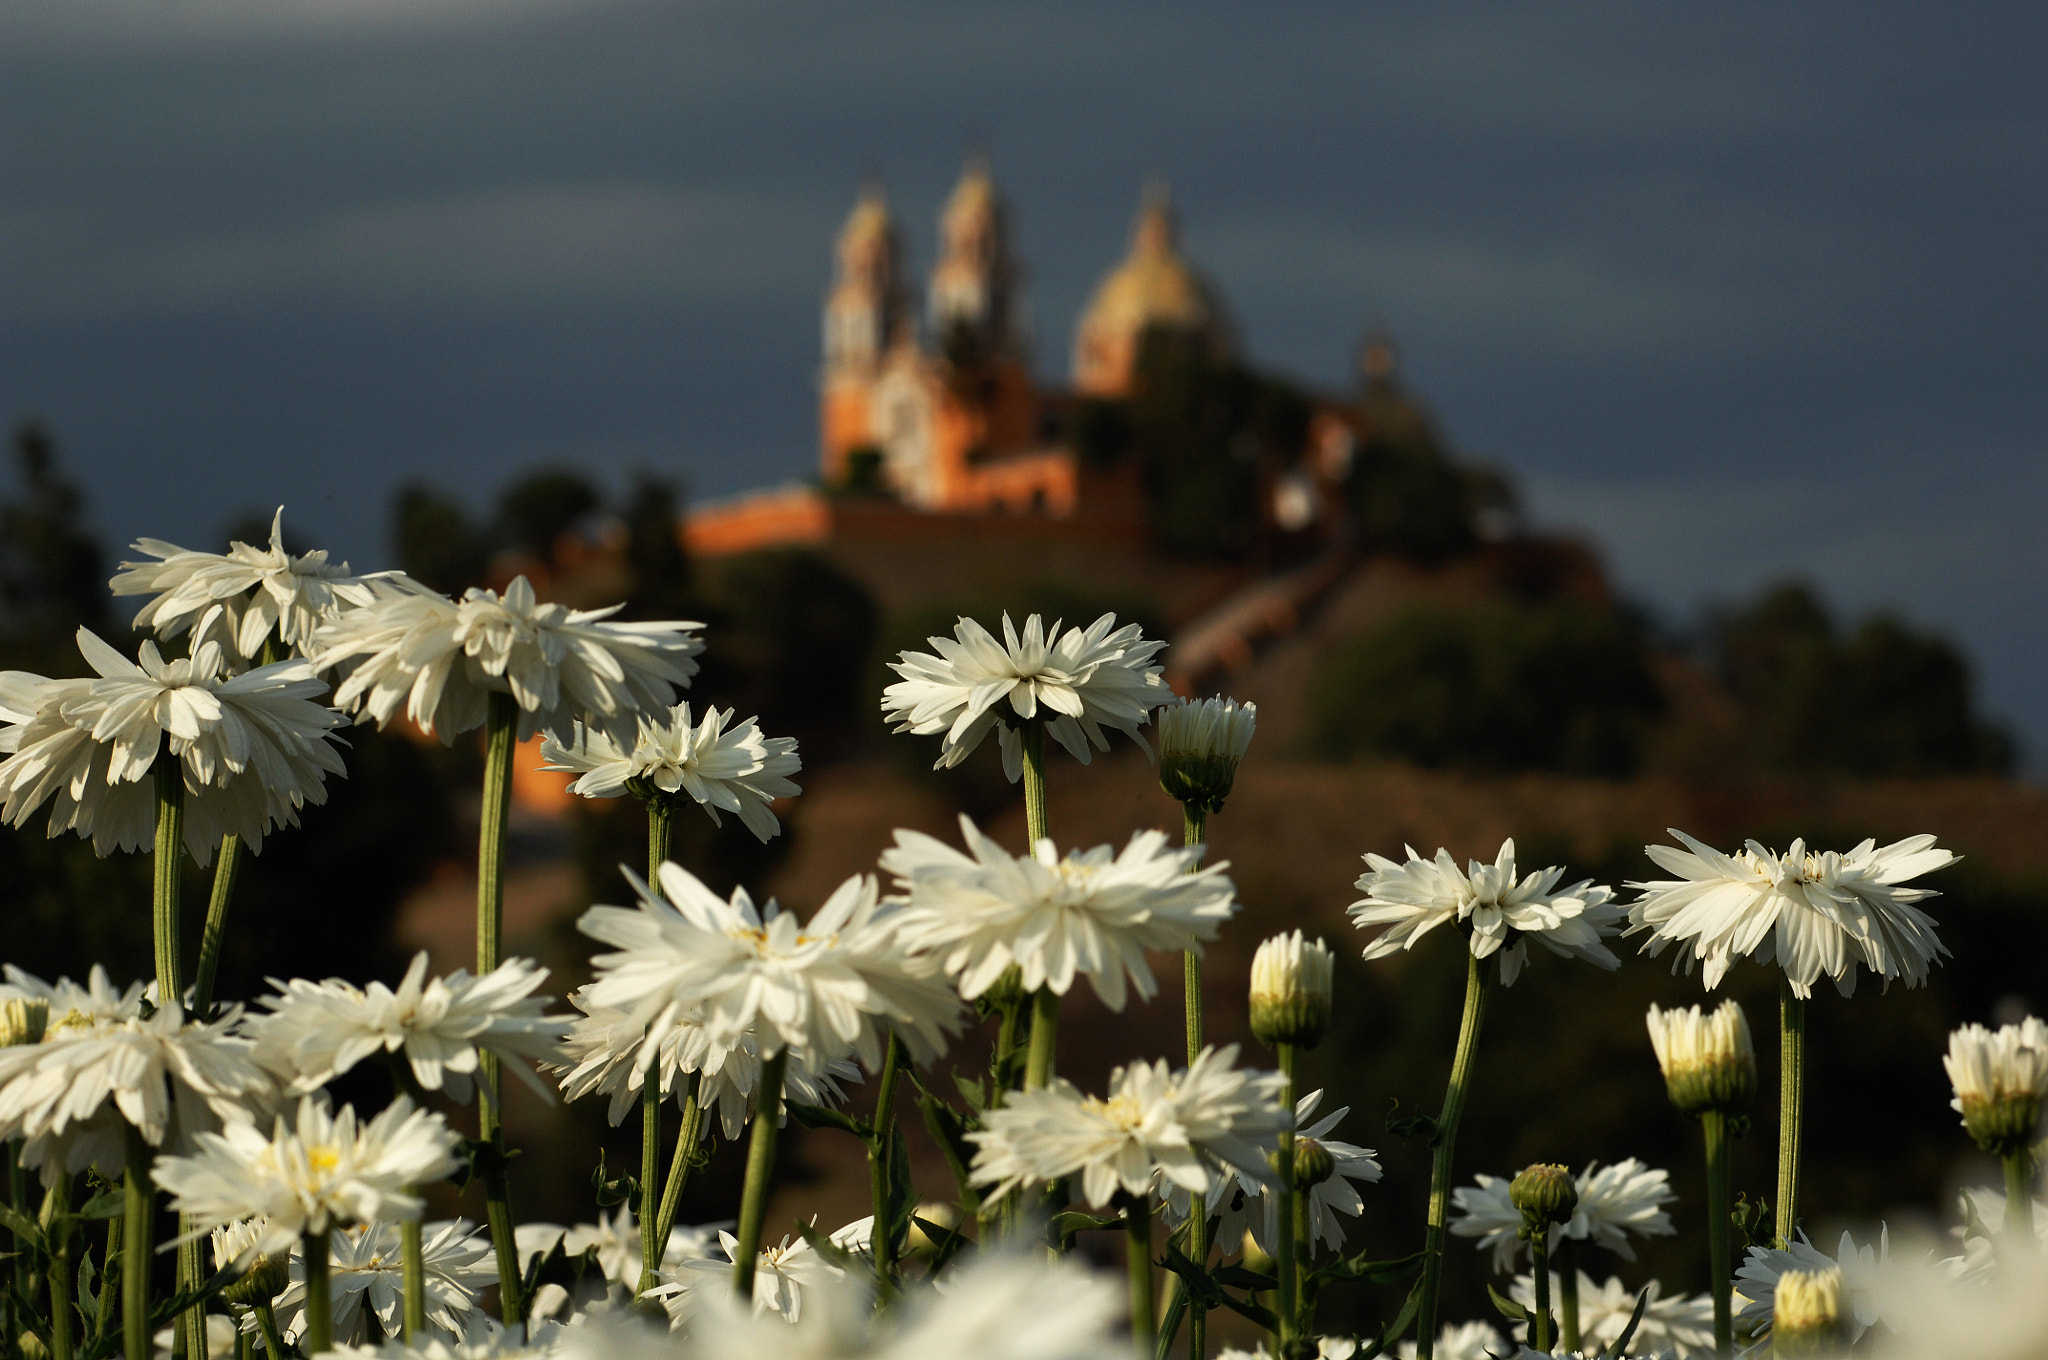 Photograph Daisies and church by Cristobal Garciaferro Rubio on 500px